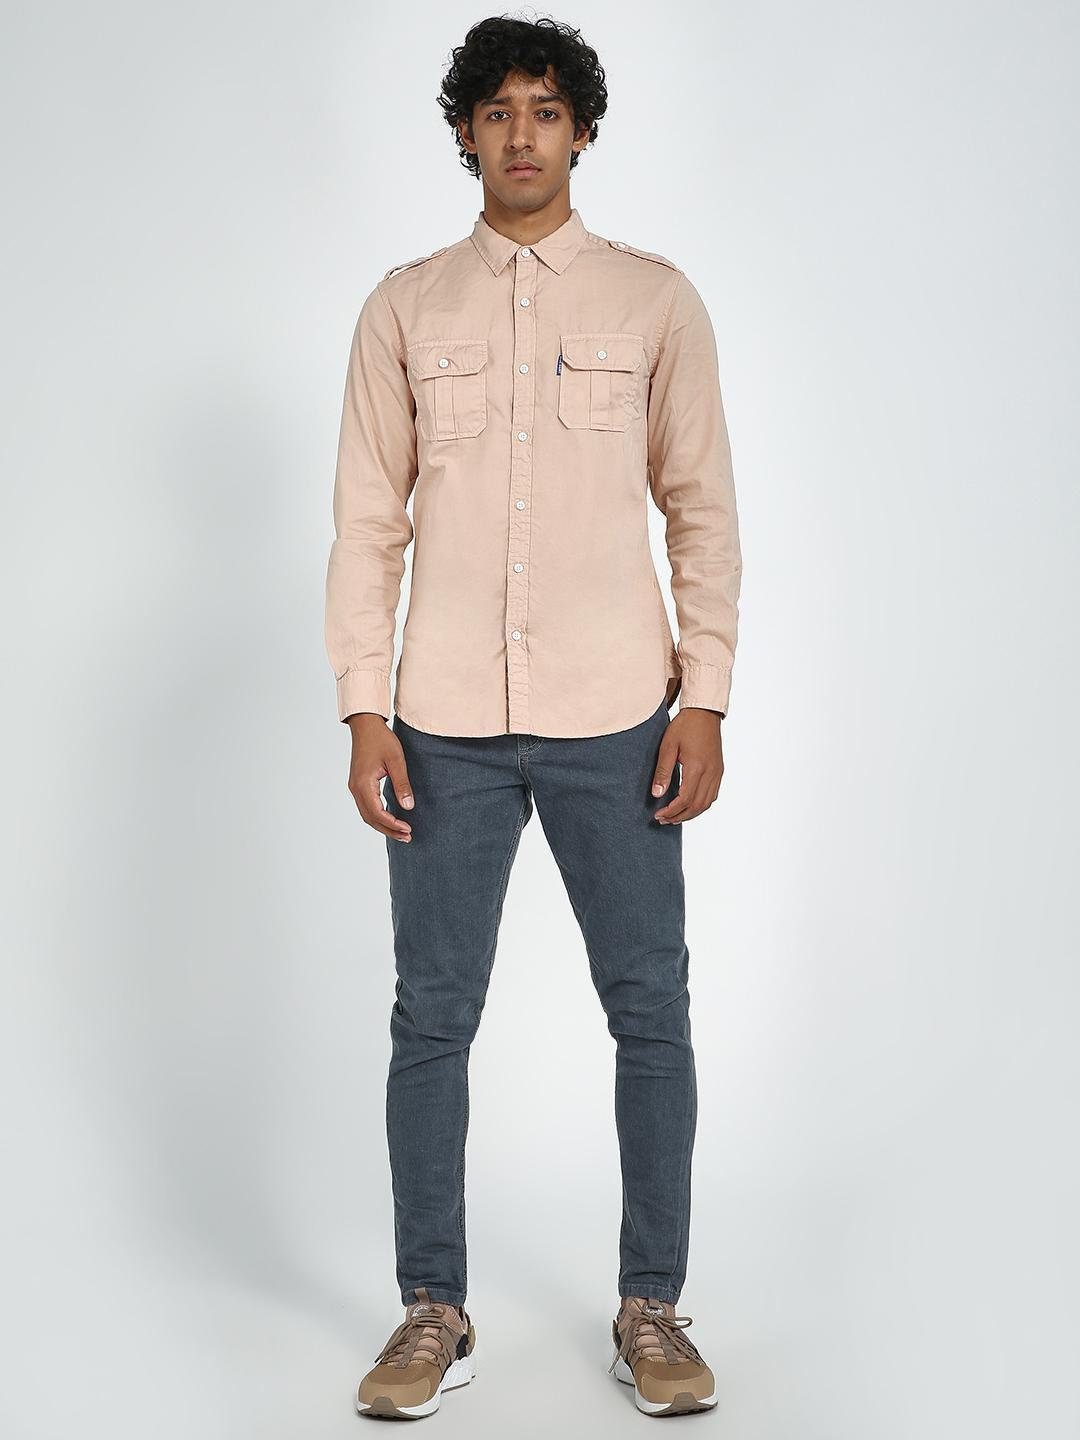 Blue Saint mistry rose Twin Pocket Slim Fit Casual Shirt 1